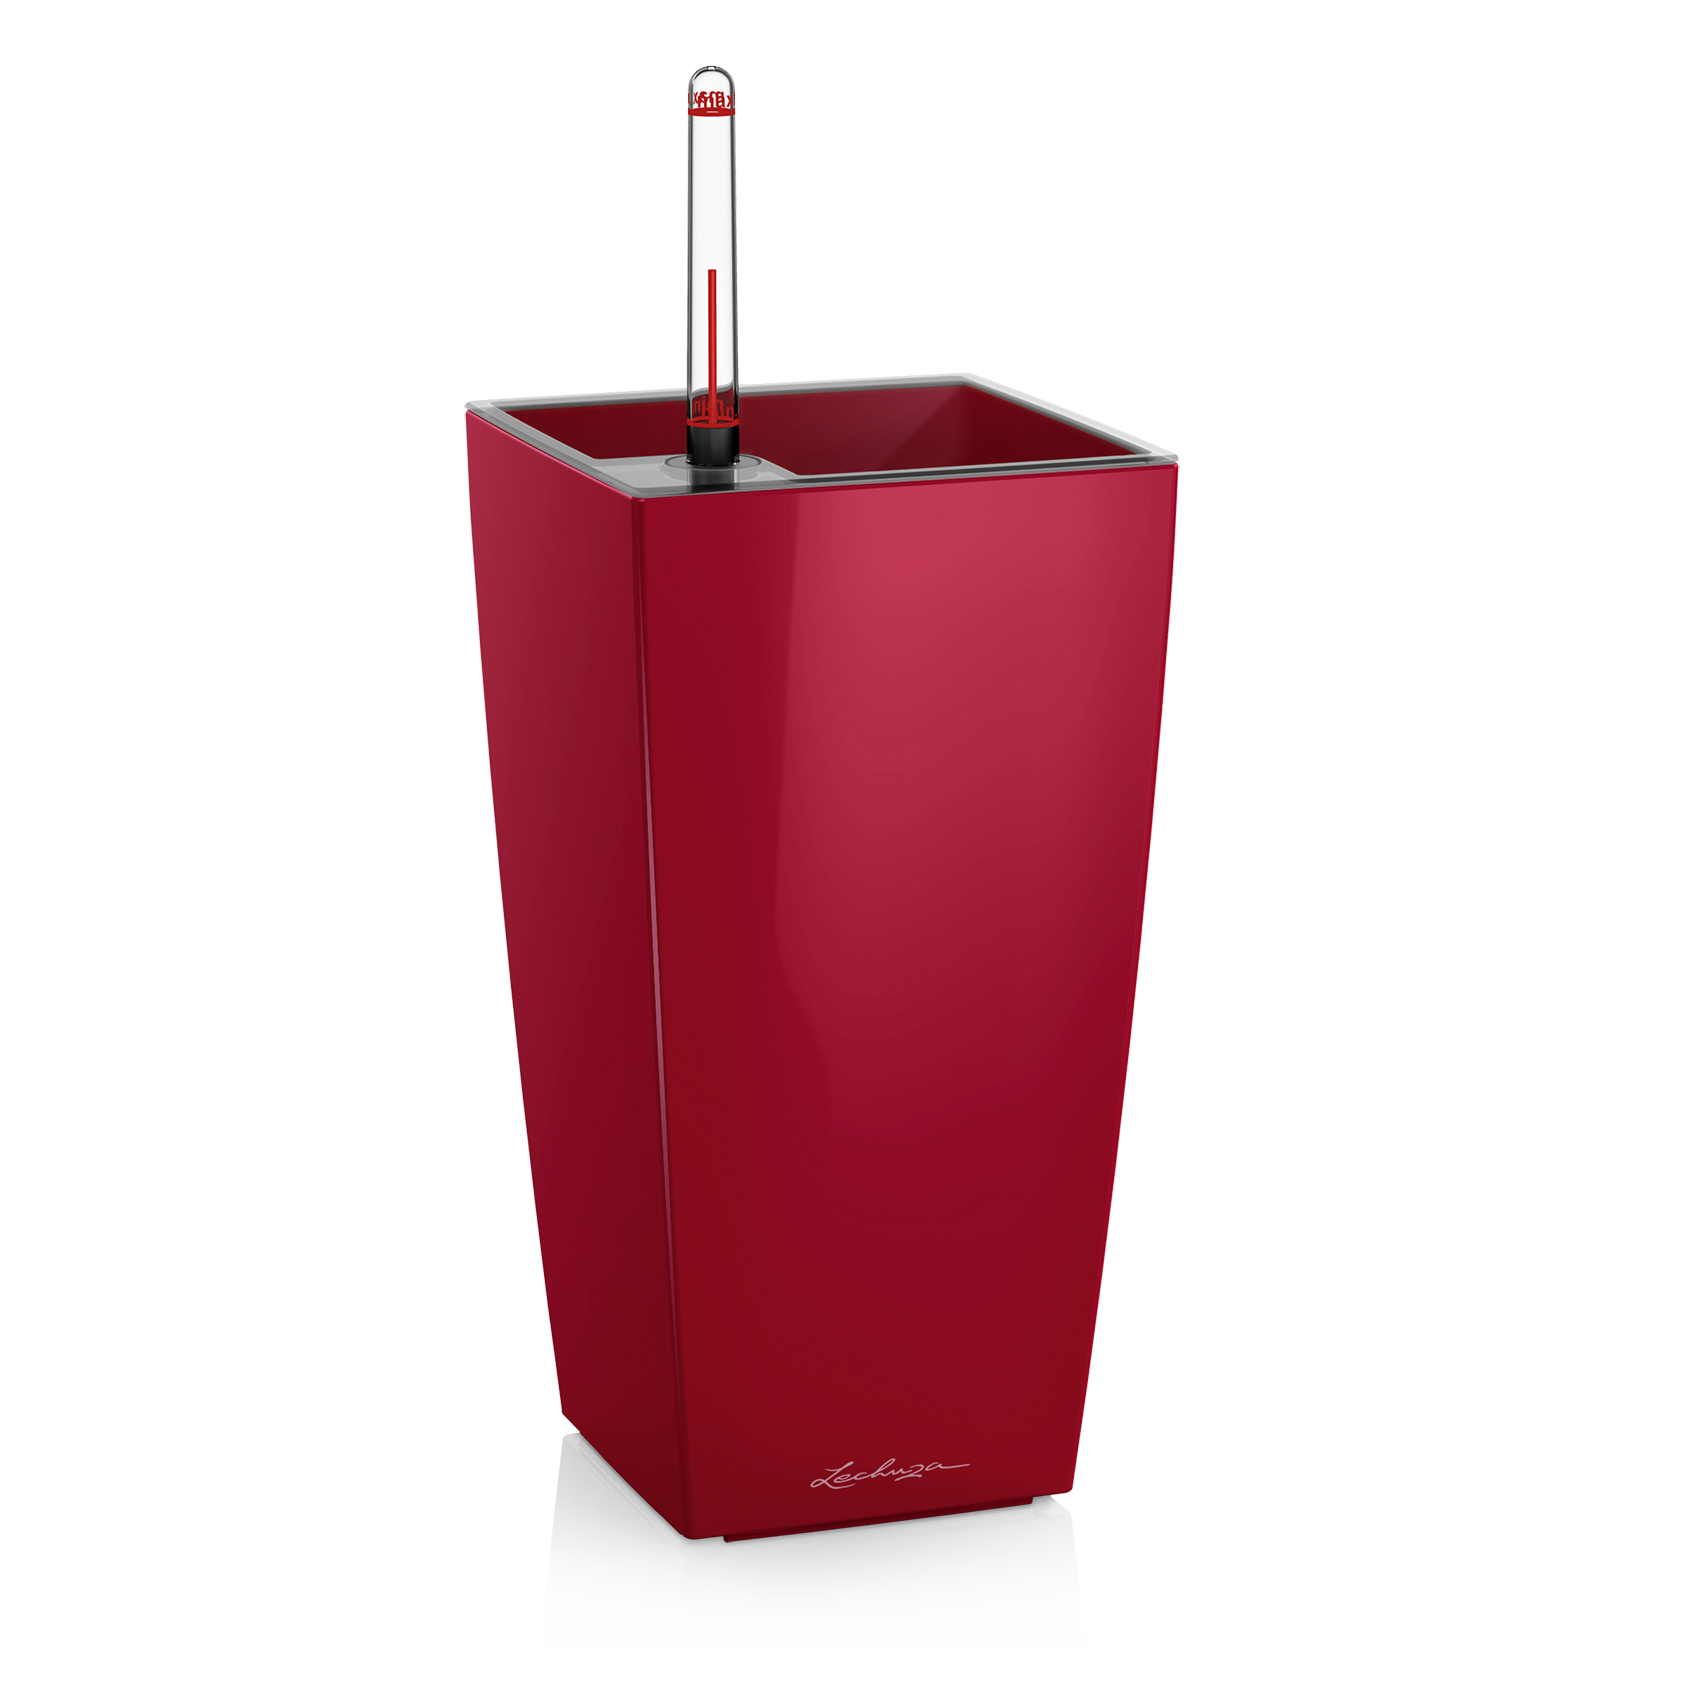 MAXI-CUBI scarlet red high-gloss